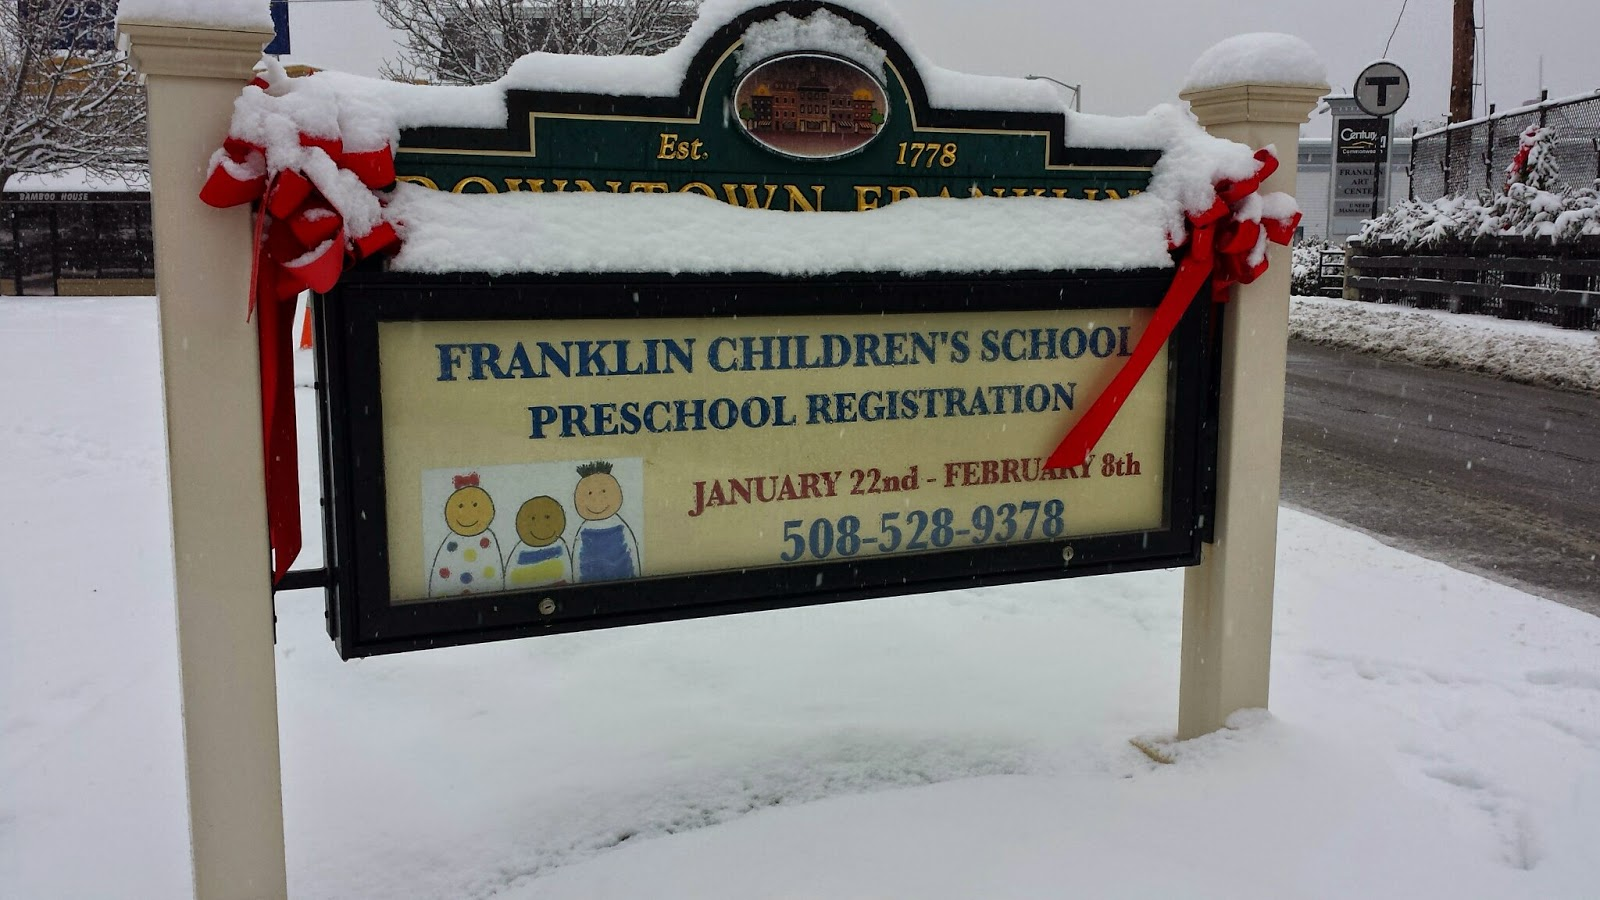 Franklin Children's School has another registration day scheduled for Feb 8th